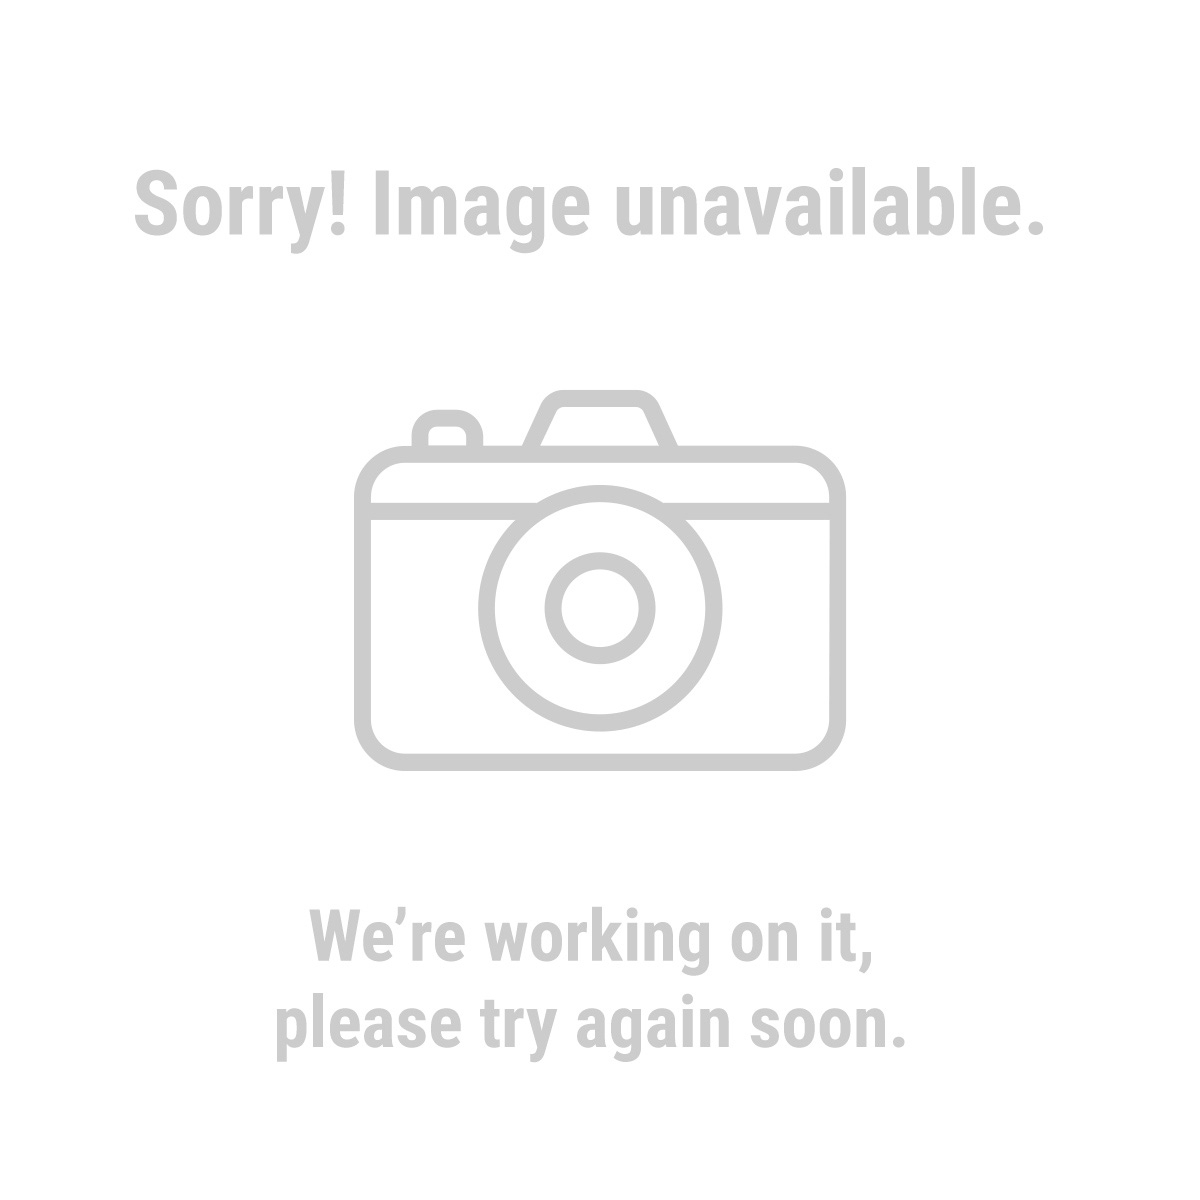 Storehouse 67693 30 Piece Self-Testing ATO/ATC Auto Fuse Set